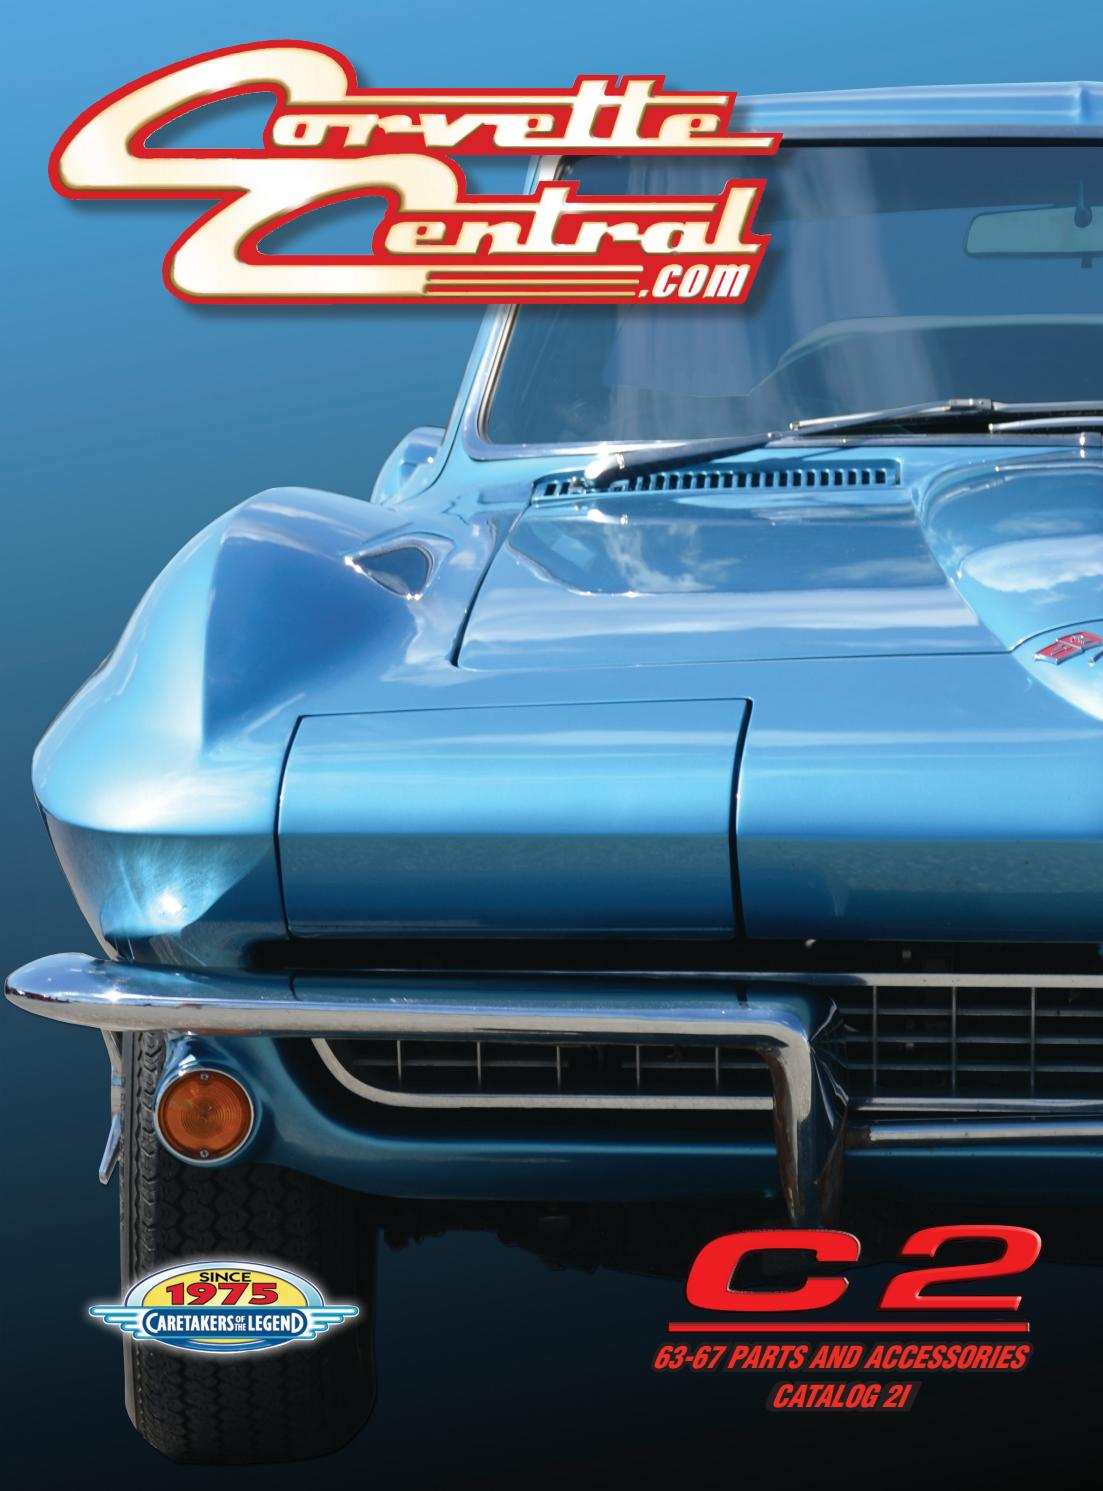 hight resolution of corvette central c2 63 67 corvette parts catalog by corvette central issuu